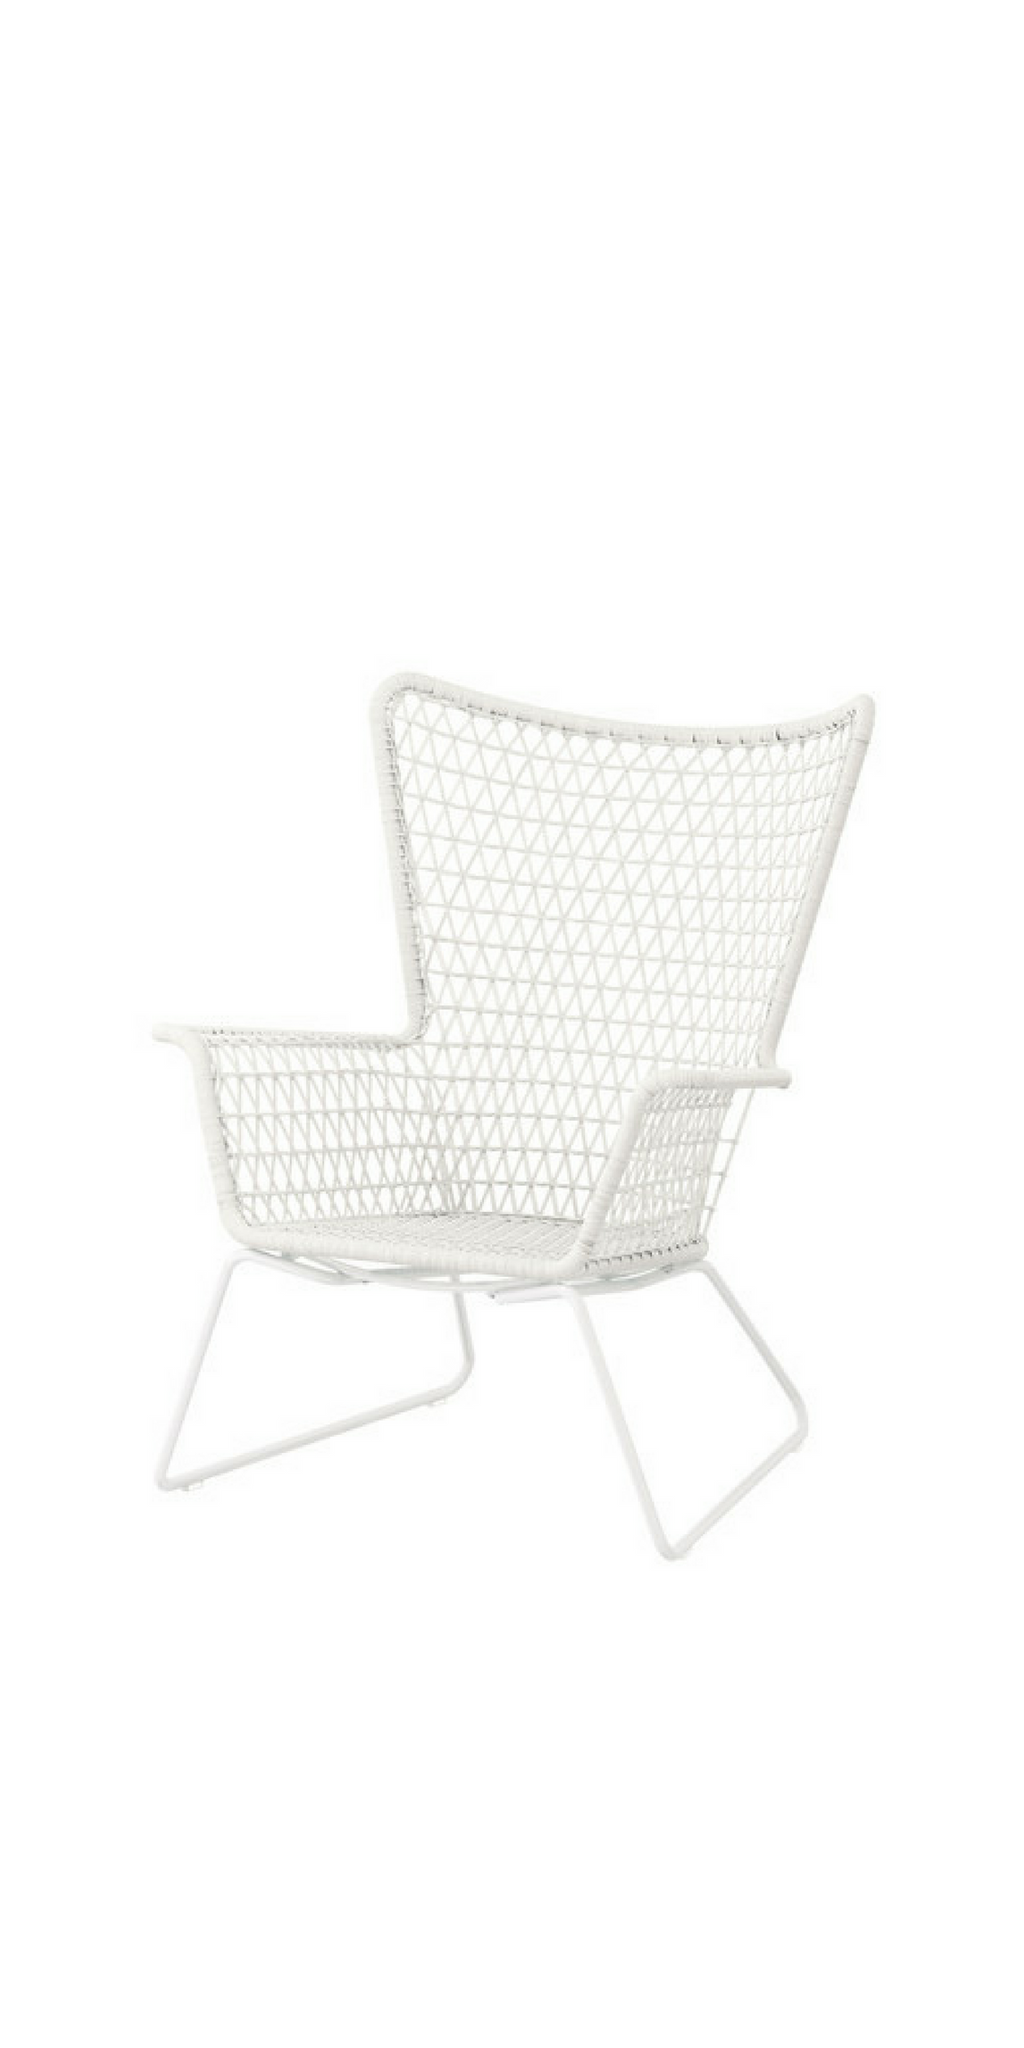 Chair - Ivy Palm Springs Sunchair White